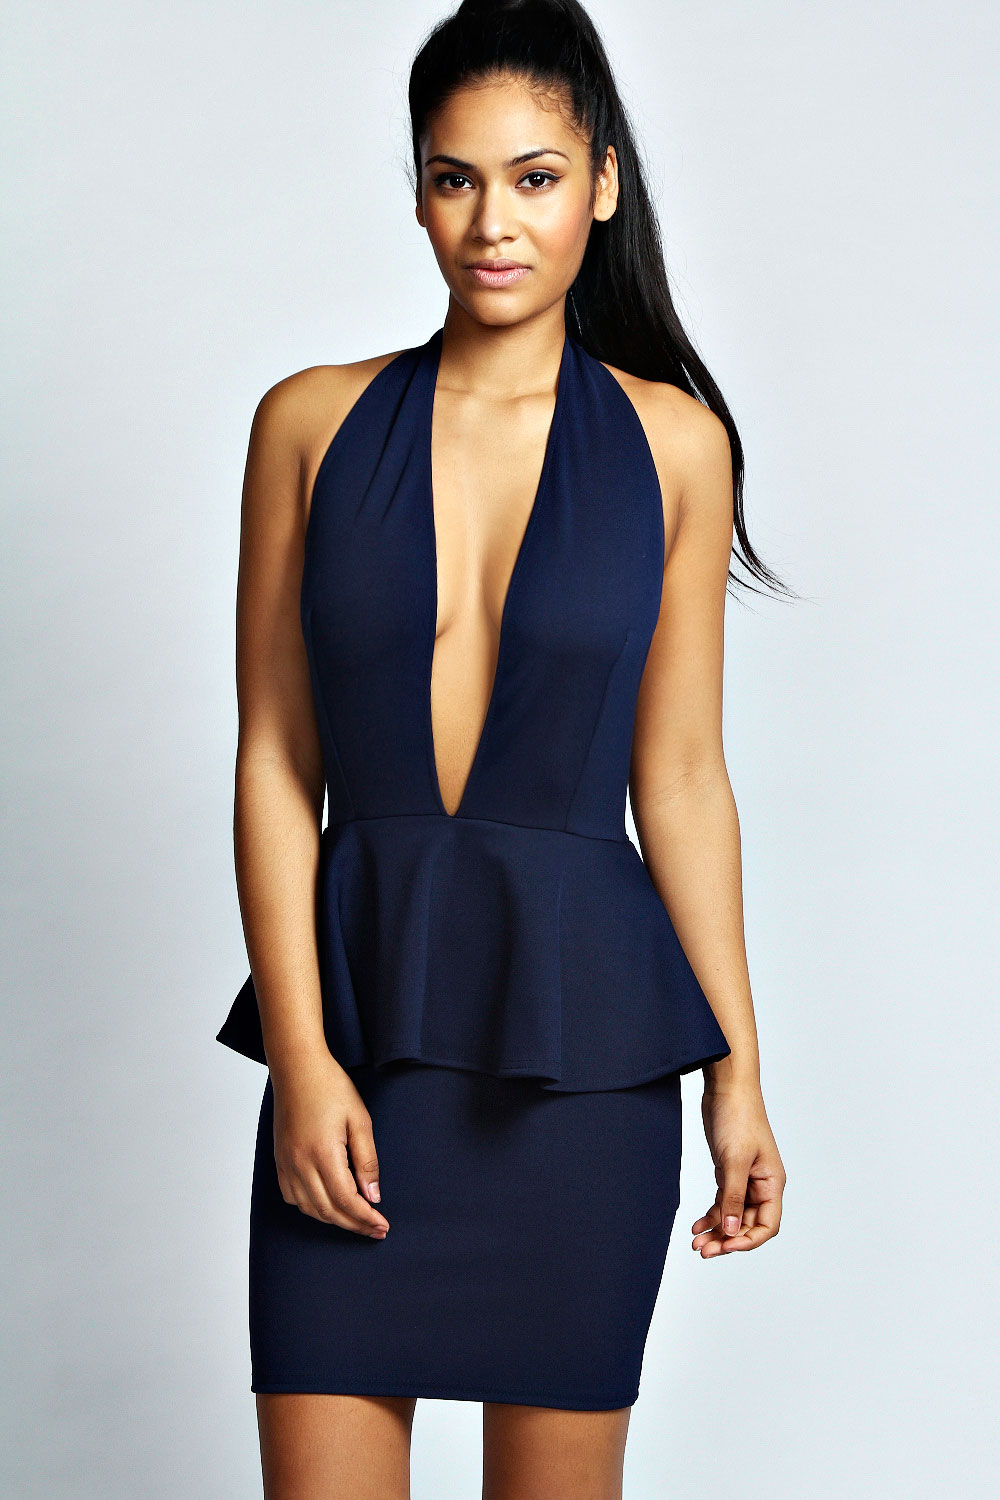 Online only! Shawl lapels outline the plunging neckline and lead into a bold halter strap, to give this beautiful bodycon dress a sophisticated touch! Crepe knit with some stretch hugs the body, leaving a sexy open back to dazzle from behind!Partially lined.